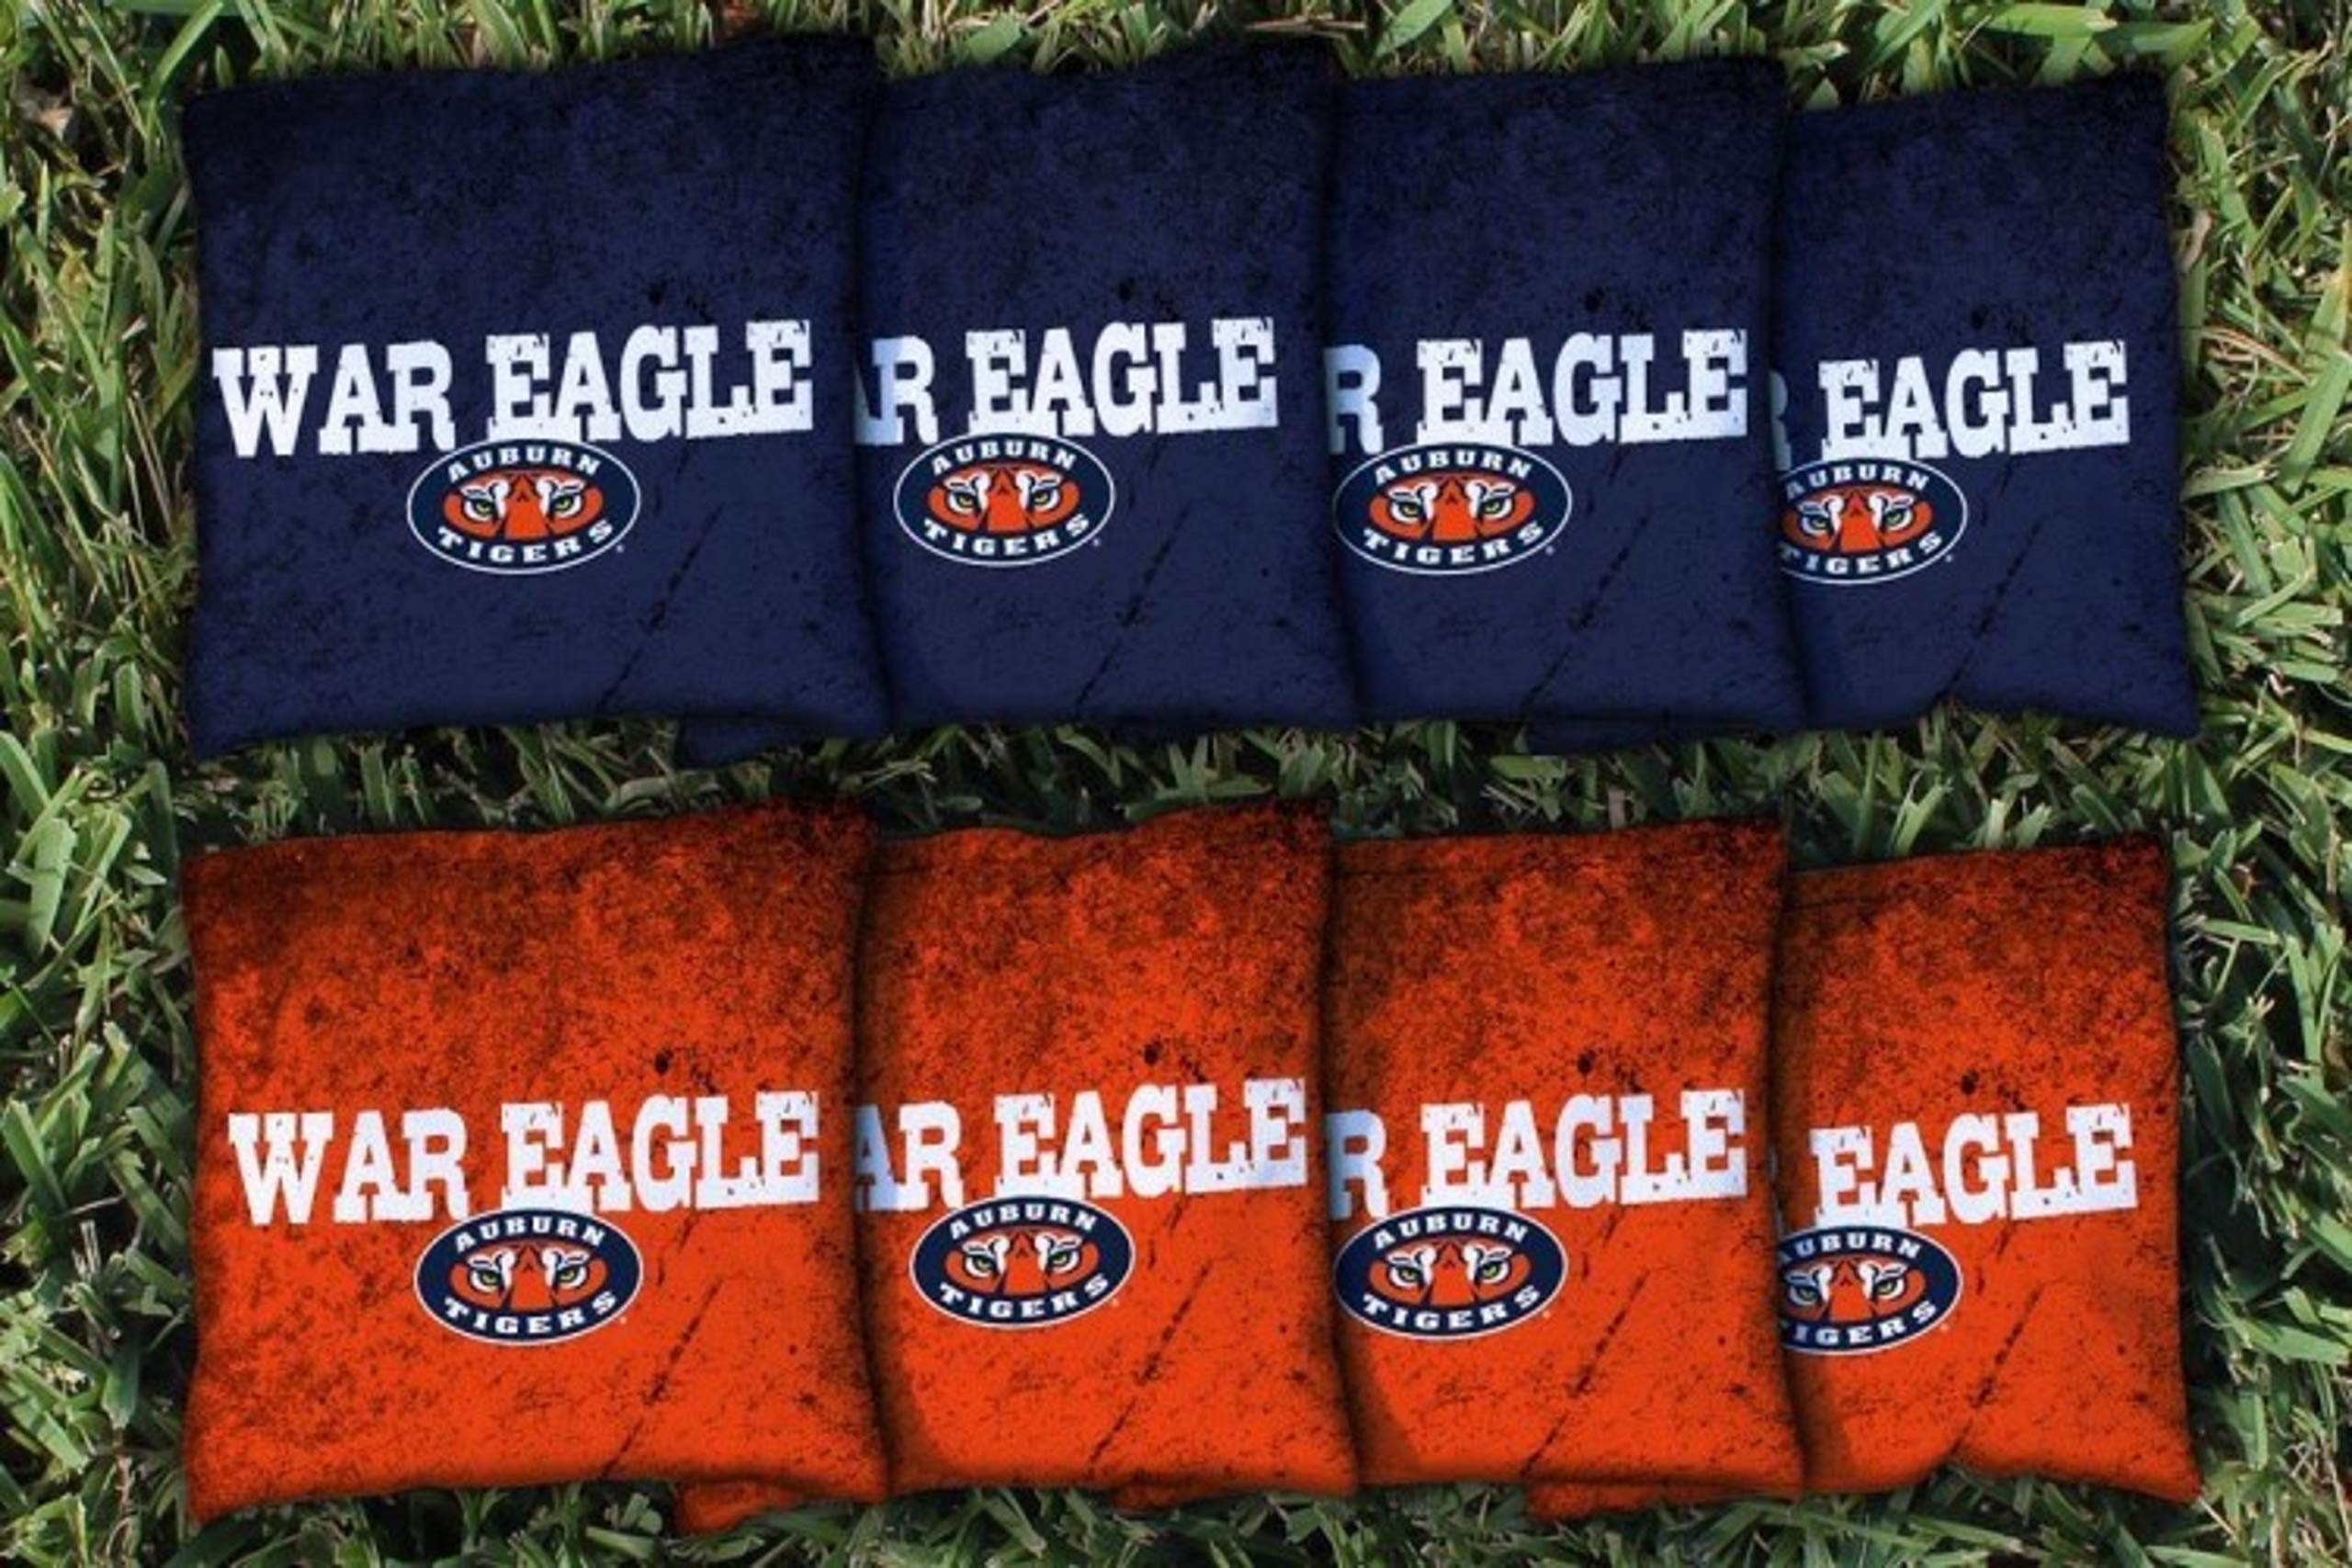 Victory Tailgate NCAA Regulation All Weather Cornhole Game Bag Set - 8 Bags Included - Auburn University Tigers War Eagle by Victory Tailgate